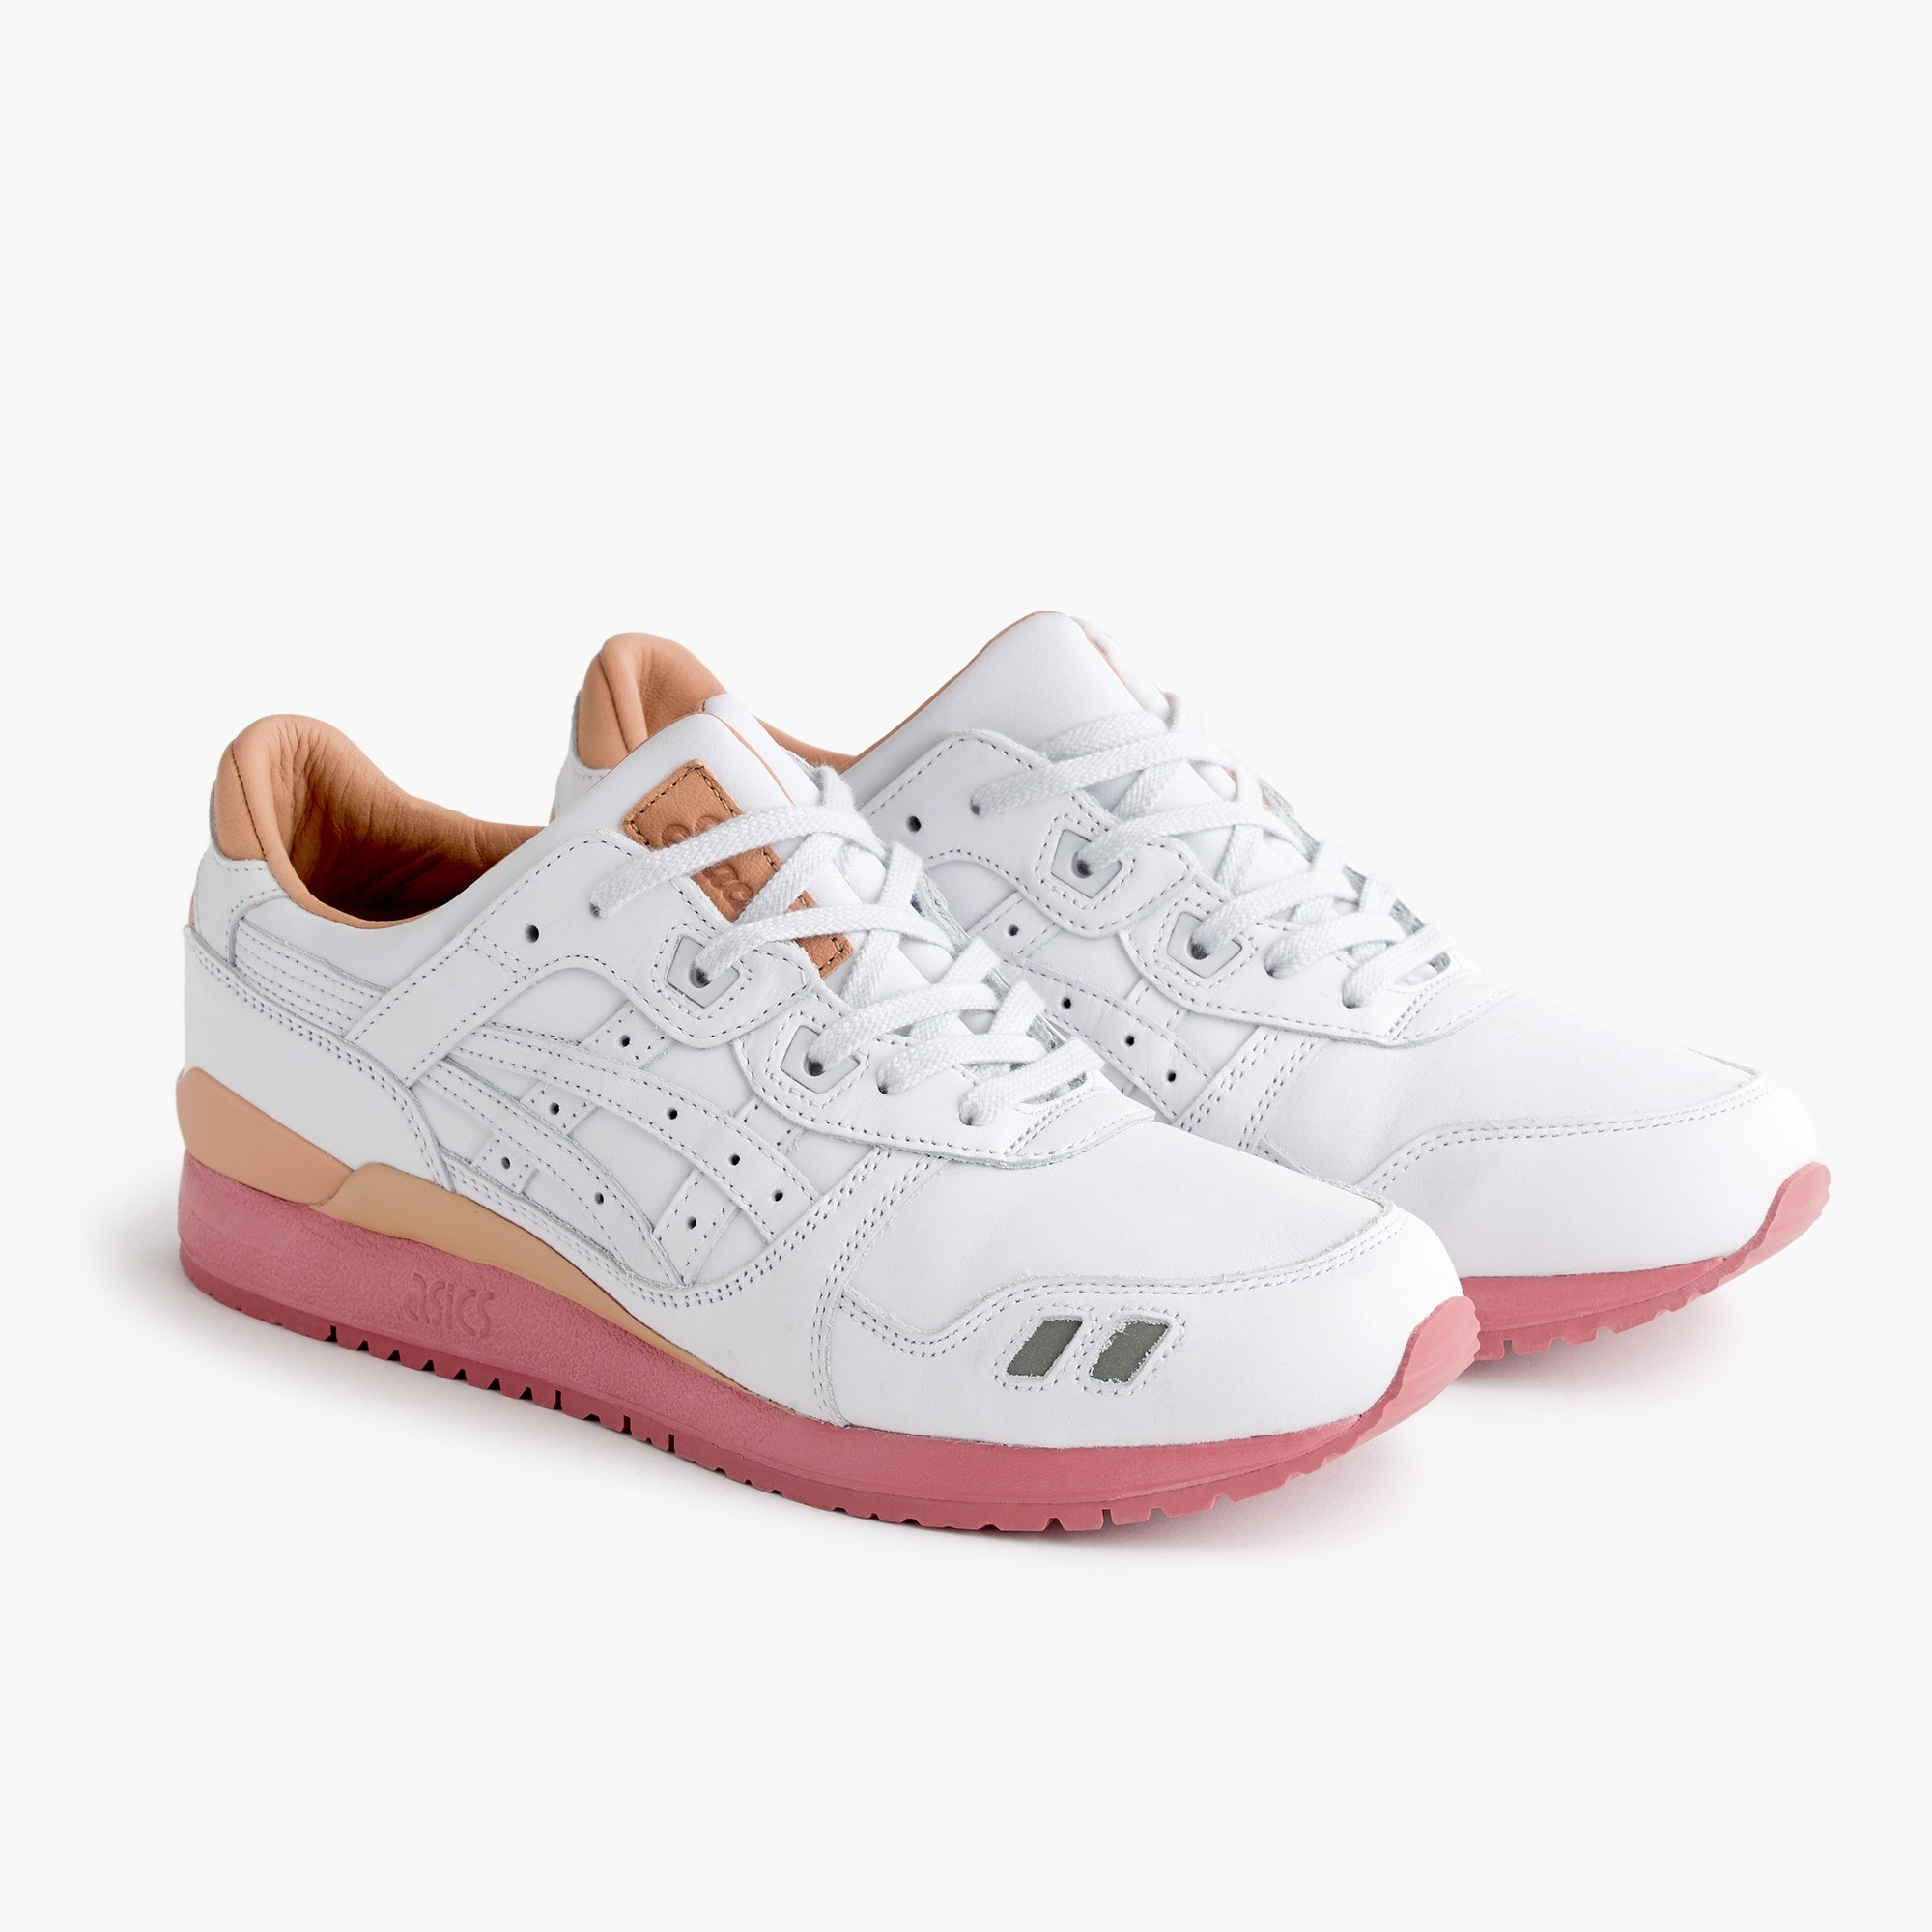 Packer™ X J.Crew X ASICS Tiger™ GEL-LYTE® III White Buck sneakers men j.crew in good company c